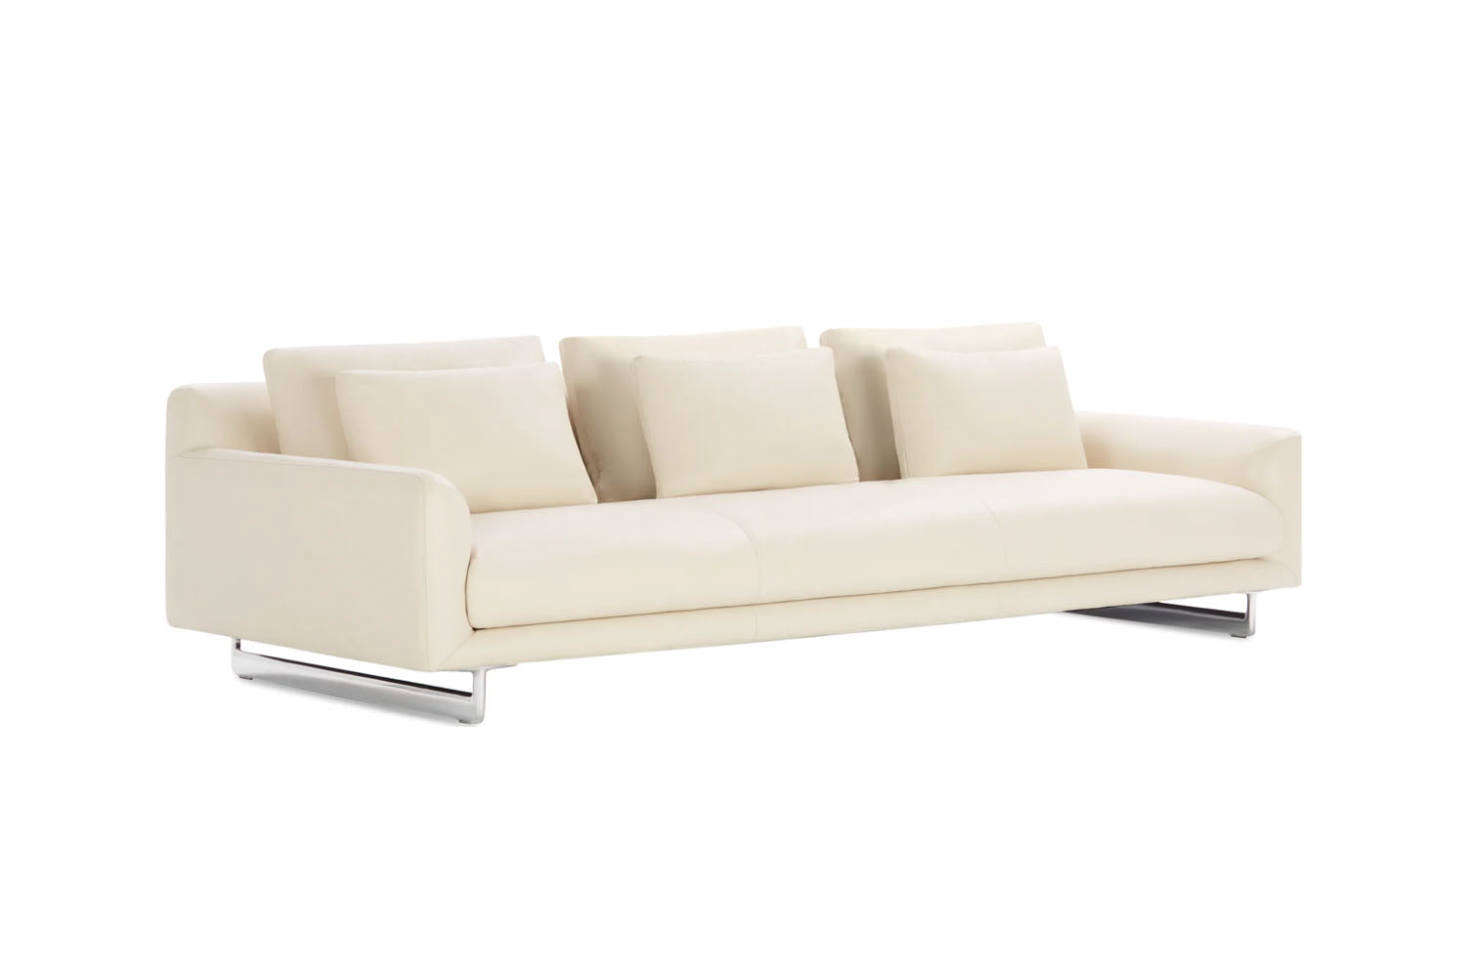 From architecture firm Claesson Koivisto Rune for Design Within Reach, the Lecco Sofa comes in two sizes—93 inch and src=